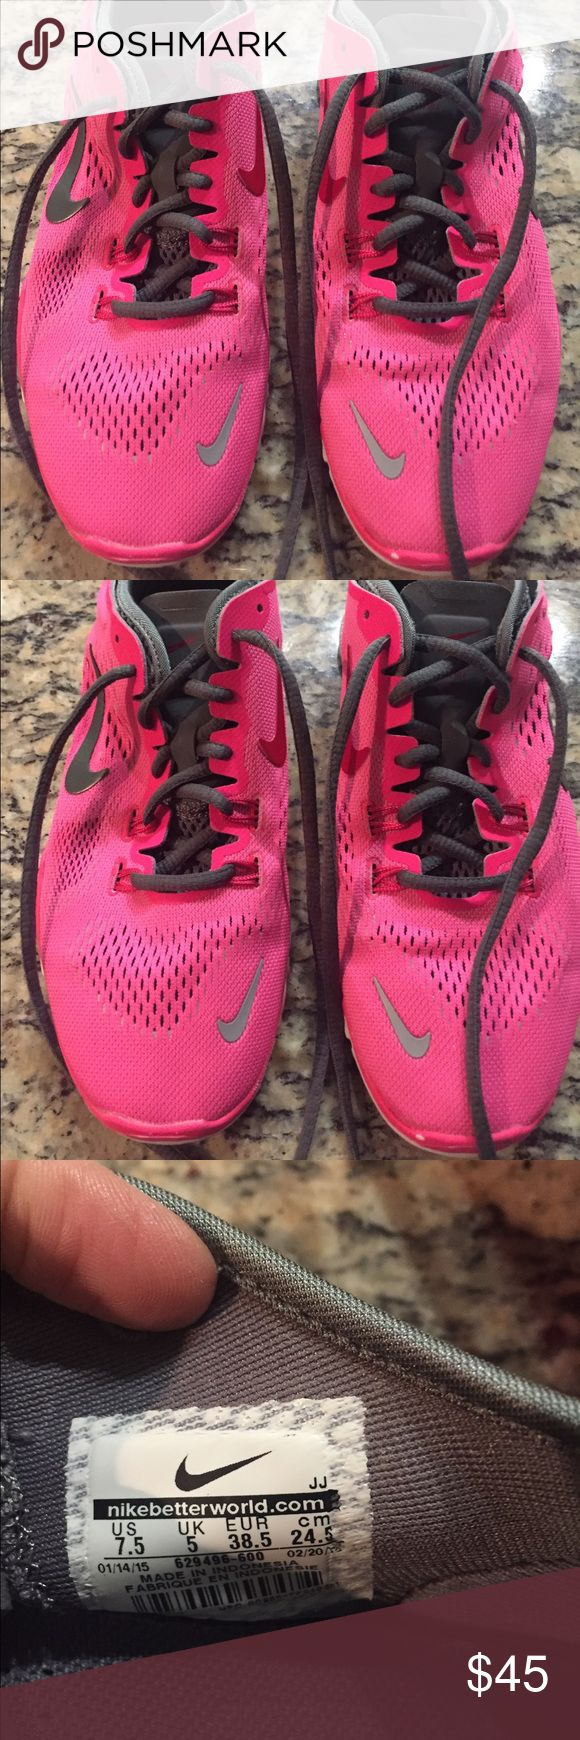 Women's Nike Pink & Gray Athletic Shoes Women's Nike Pink & Gray Athletic Shoes Size 7.5 Nike Shoes Athletic Shoes